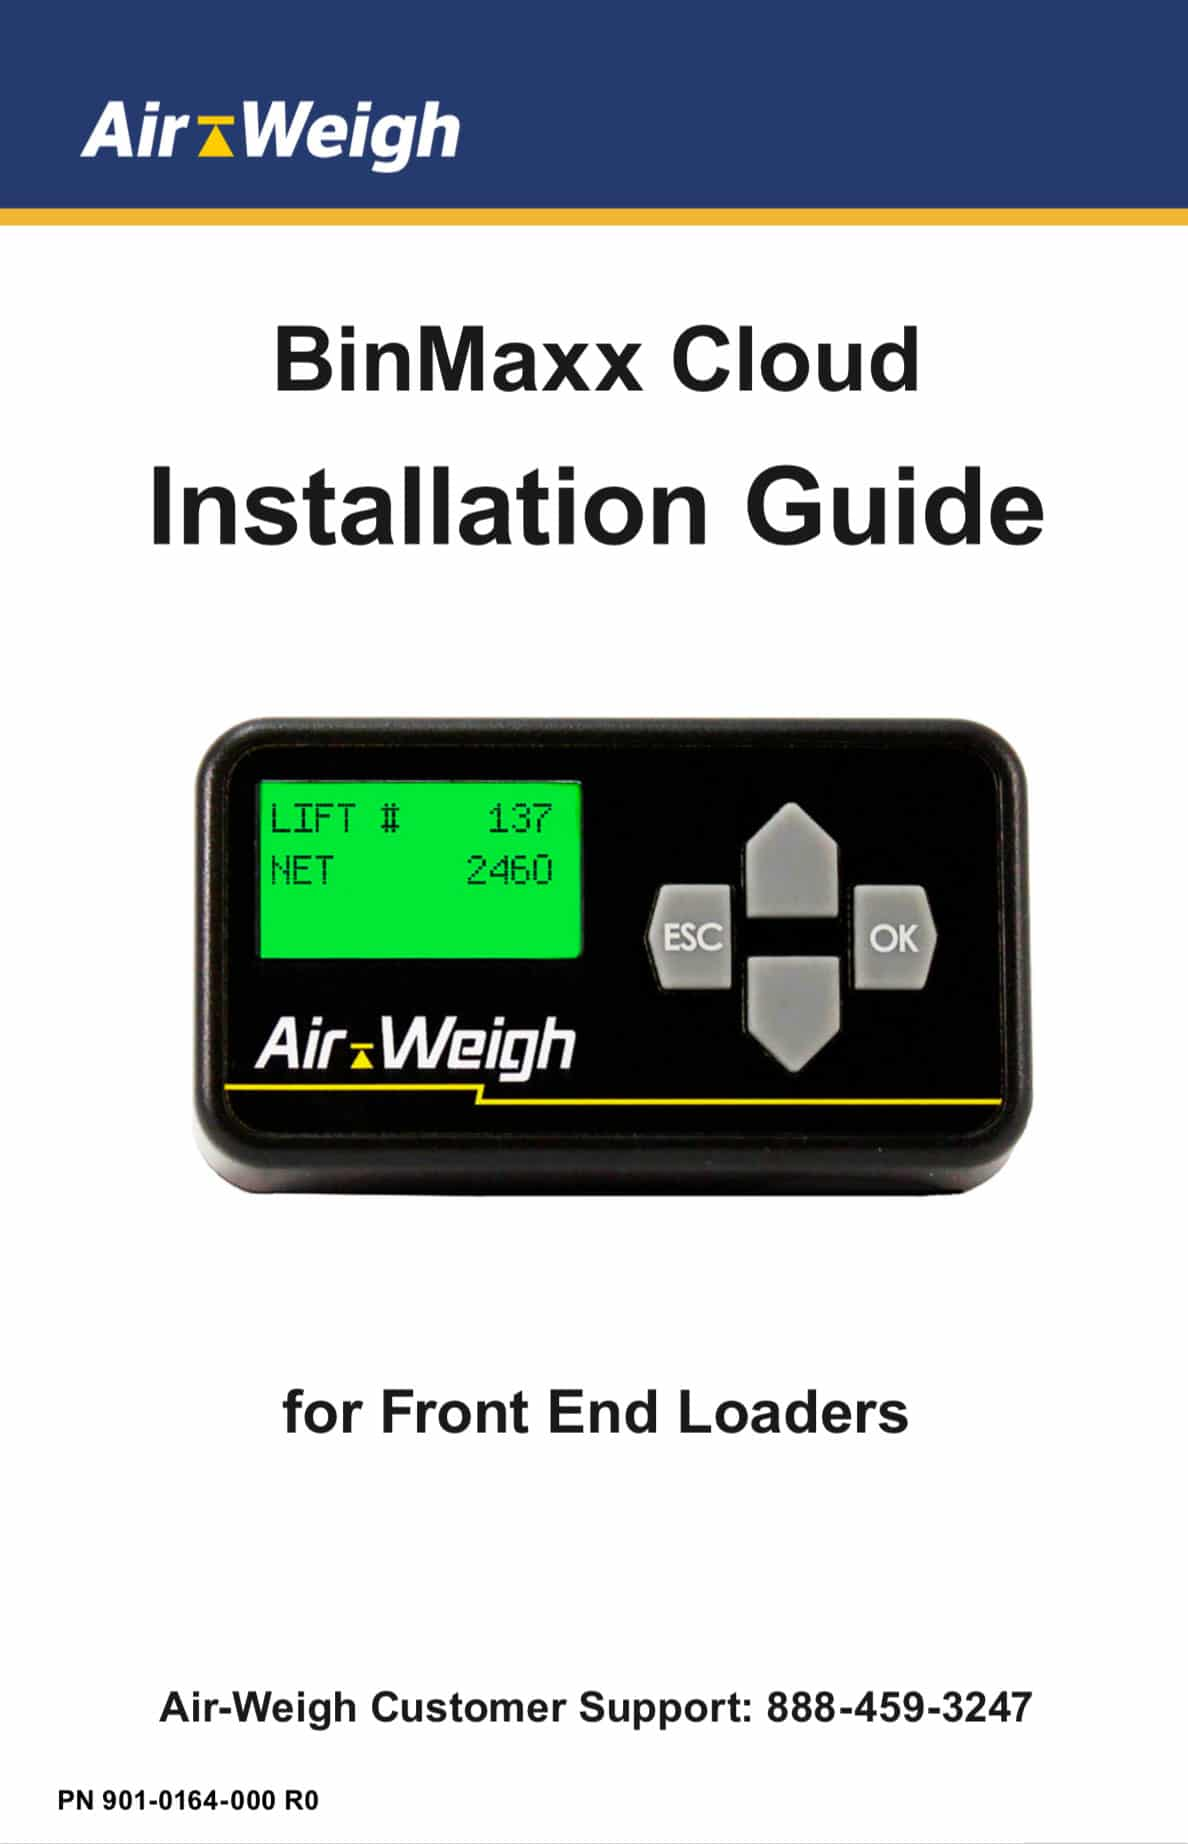 BinMaxx Cloud Installation Guide